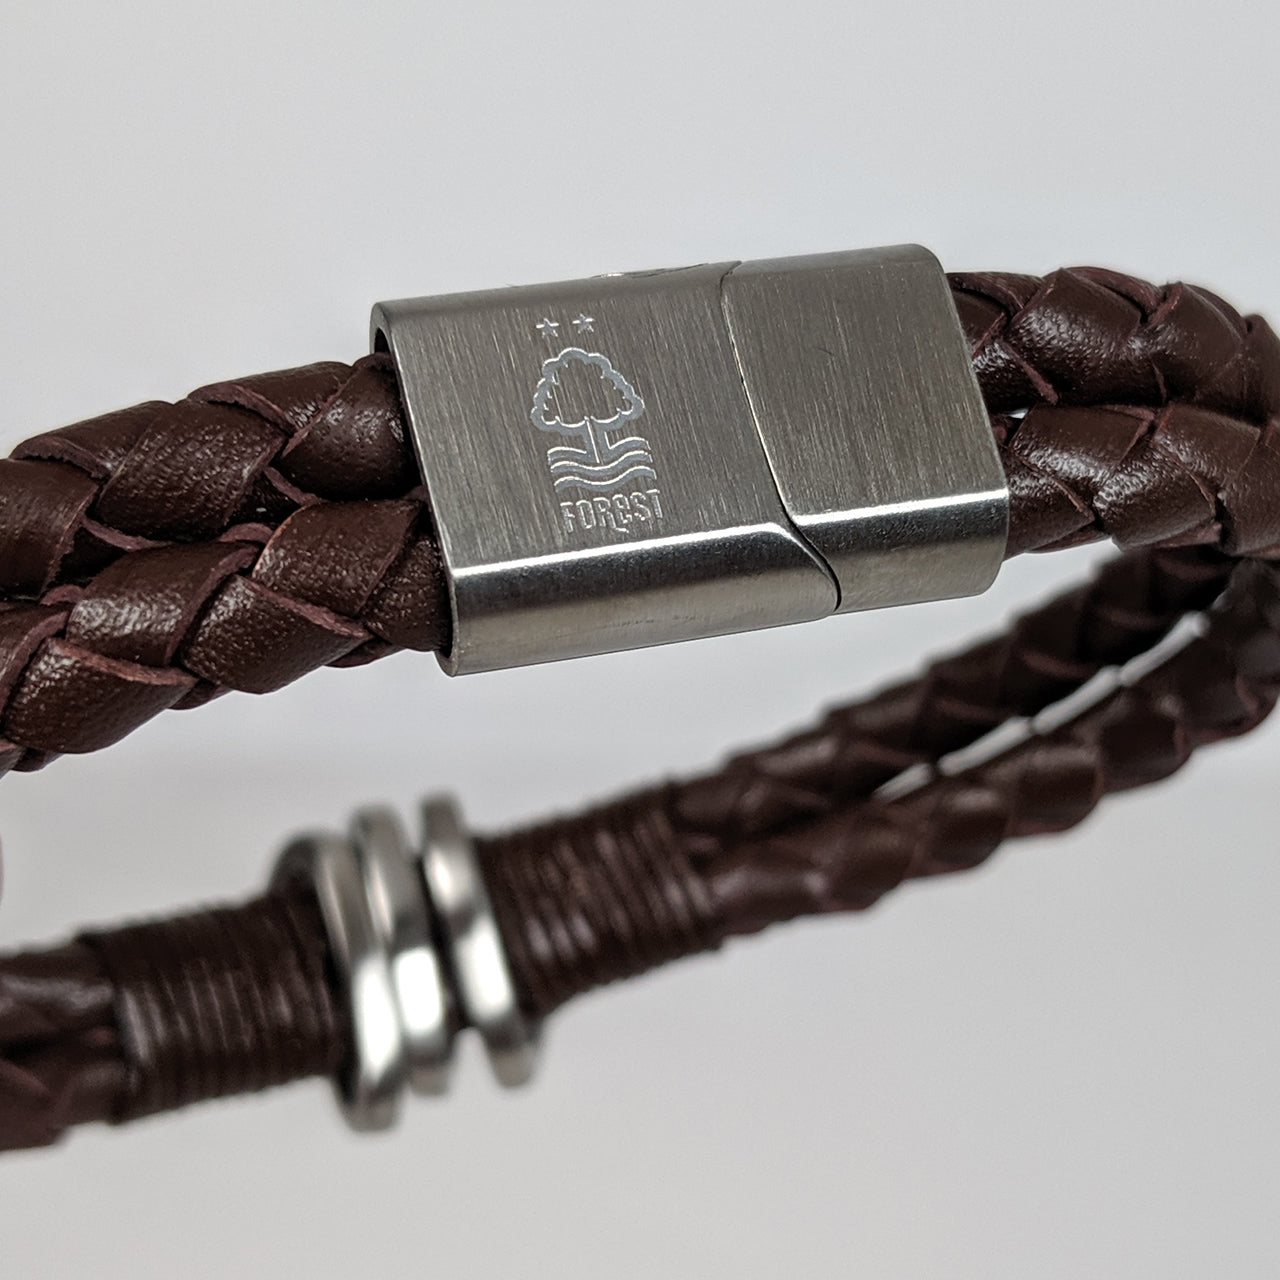 NFFC Brown Leather Crest Bracelet